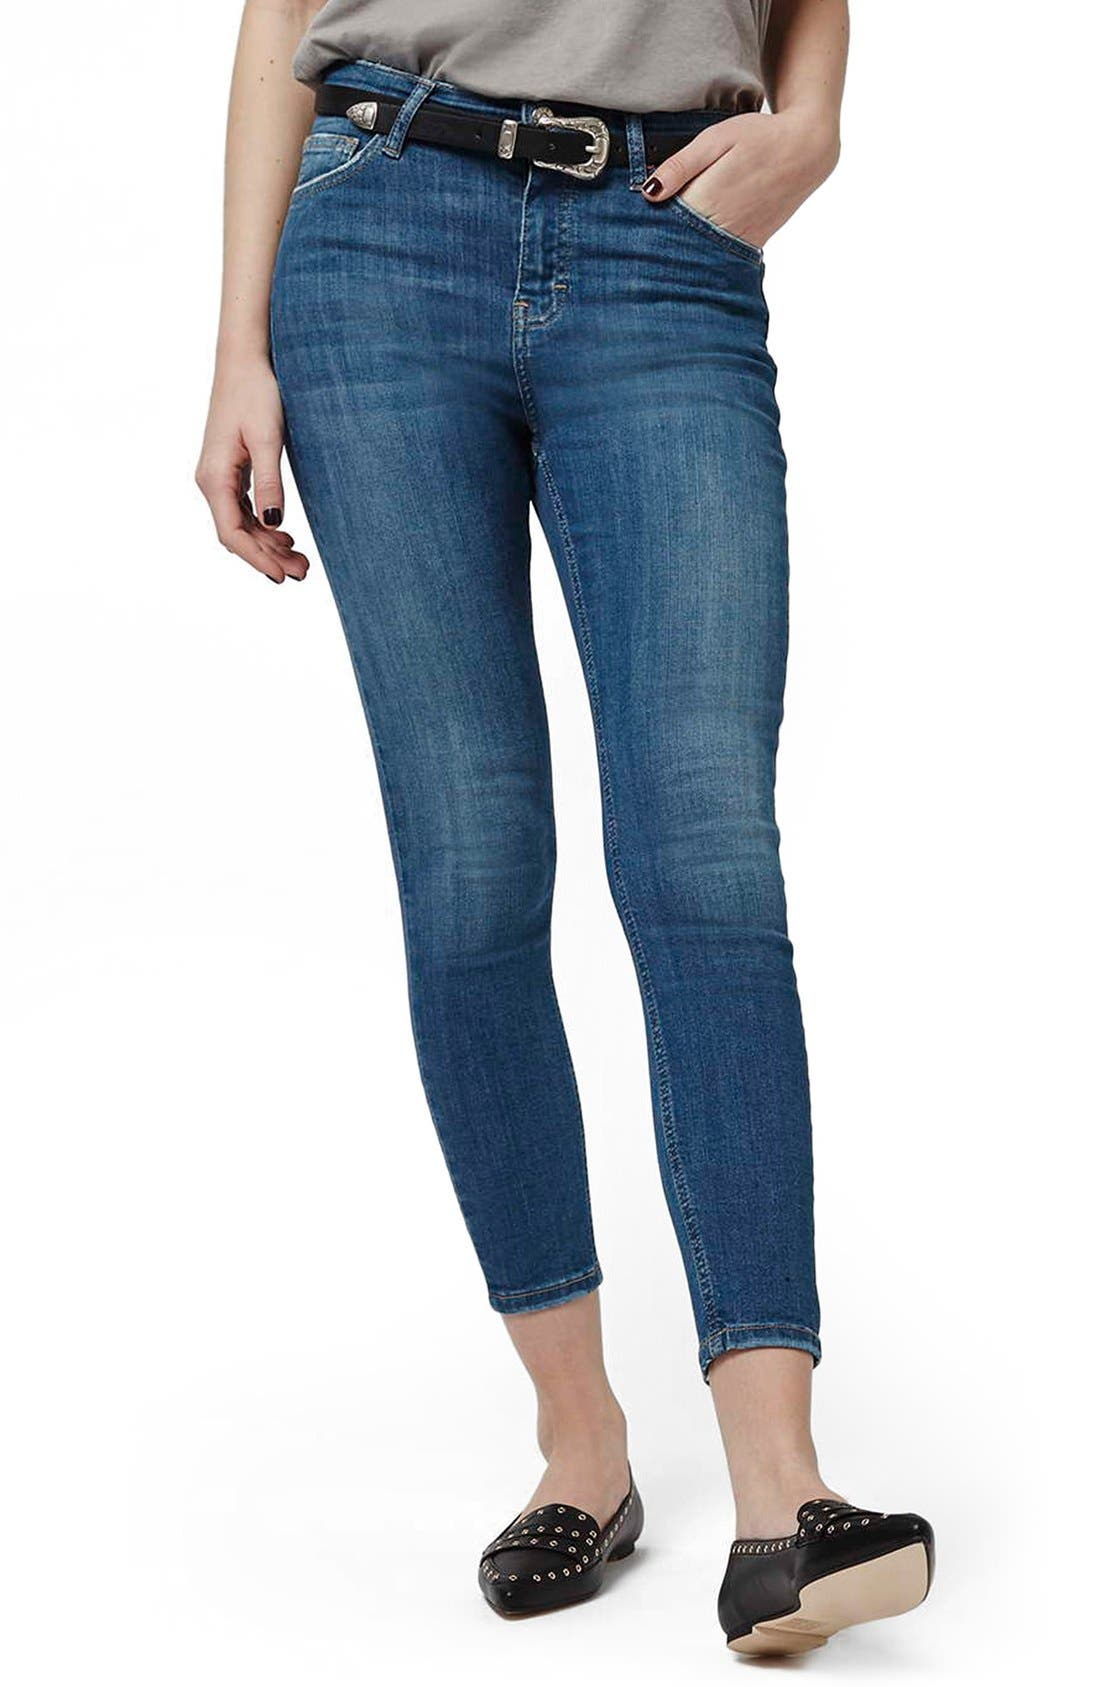 'Jamie' High Waist Ankle Skinny Jeans,                             Main thumbnail 1, color,                             Blue